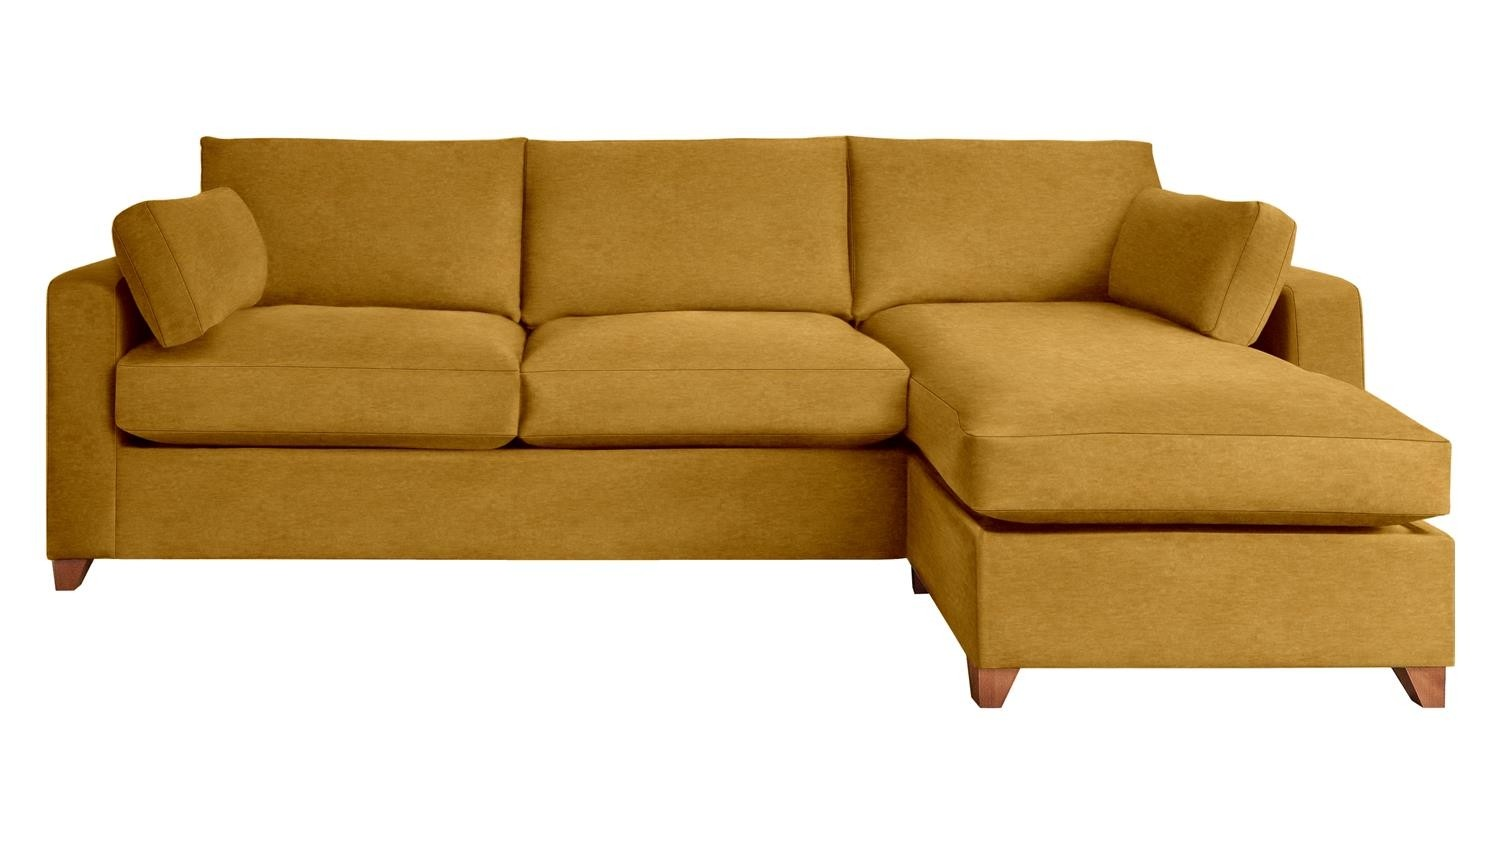 The Ashwell 5 Seater Chaise Storage Sofa Bed